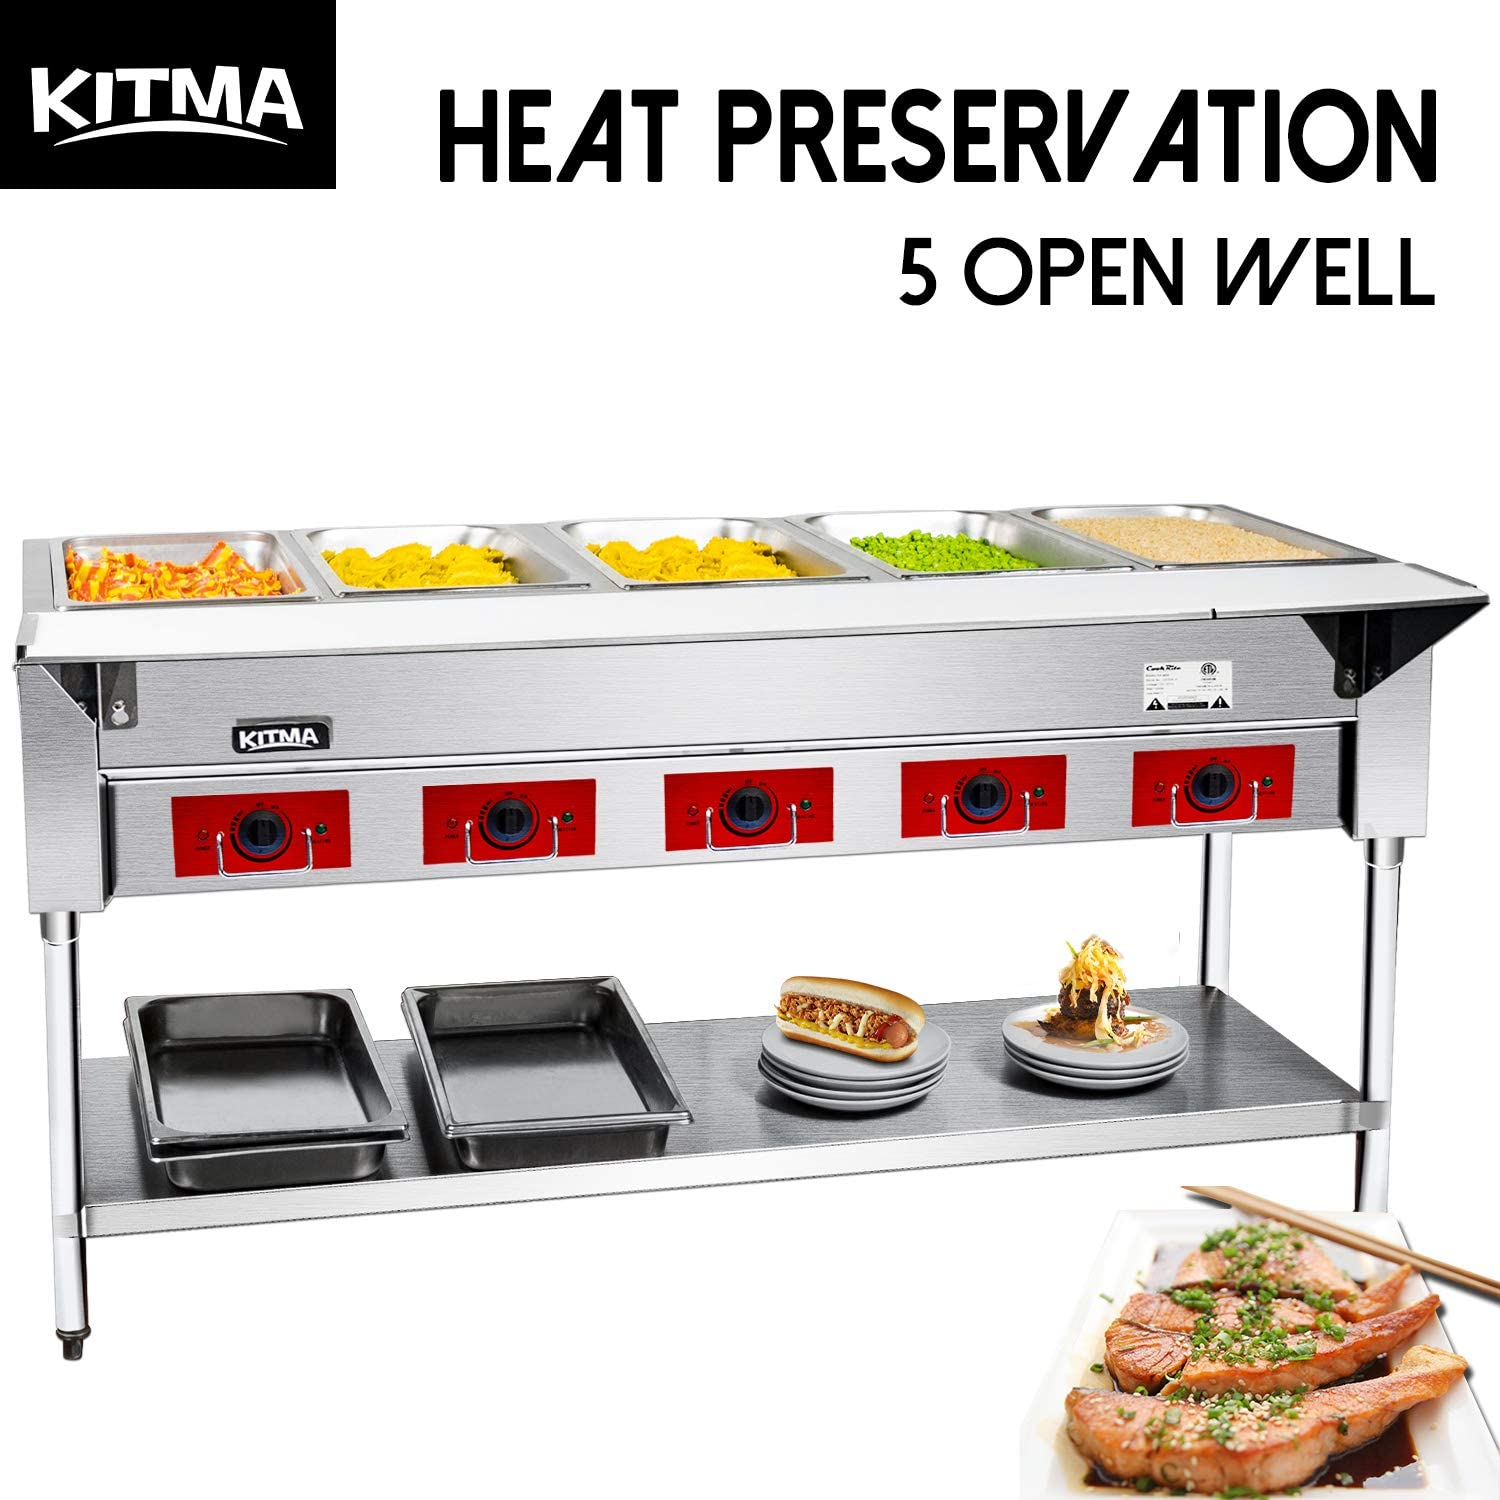 Commercial 240 V Electric Food Warmer – Kitma 5 Pot Stainless Steel Steam Table, Buffet Server for Catering and Restaurant